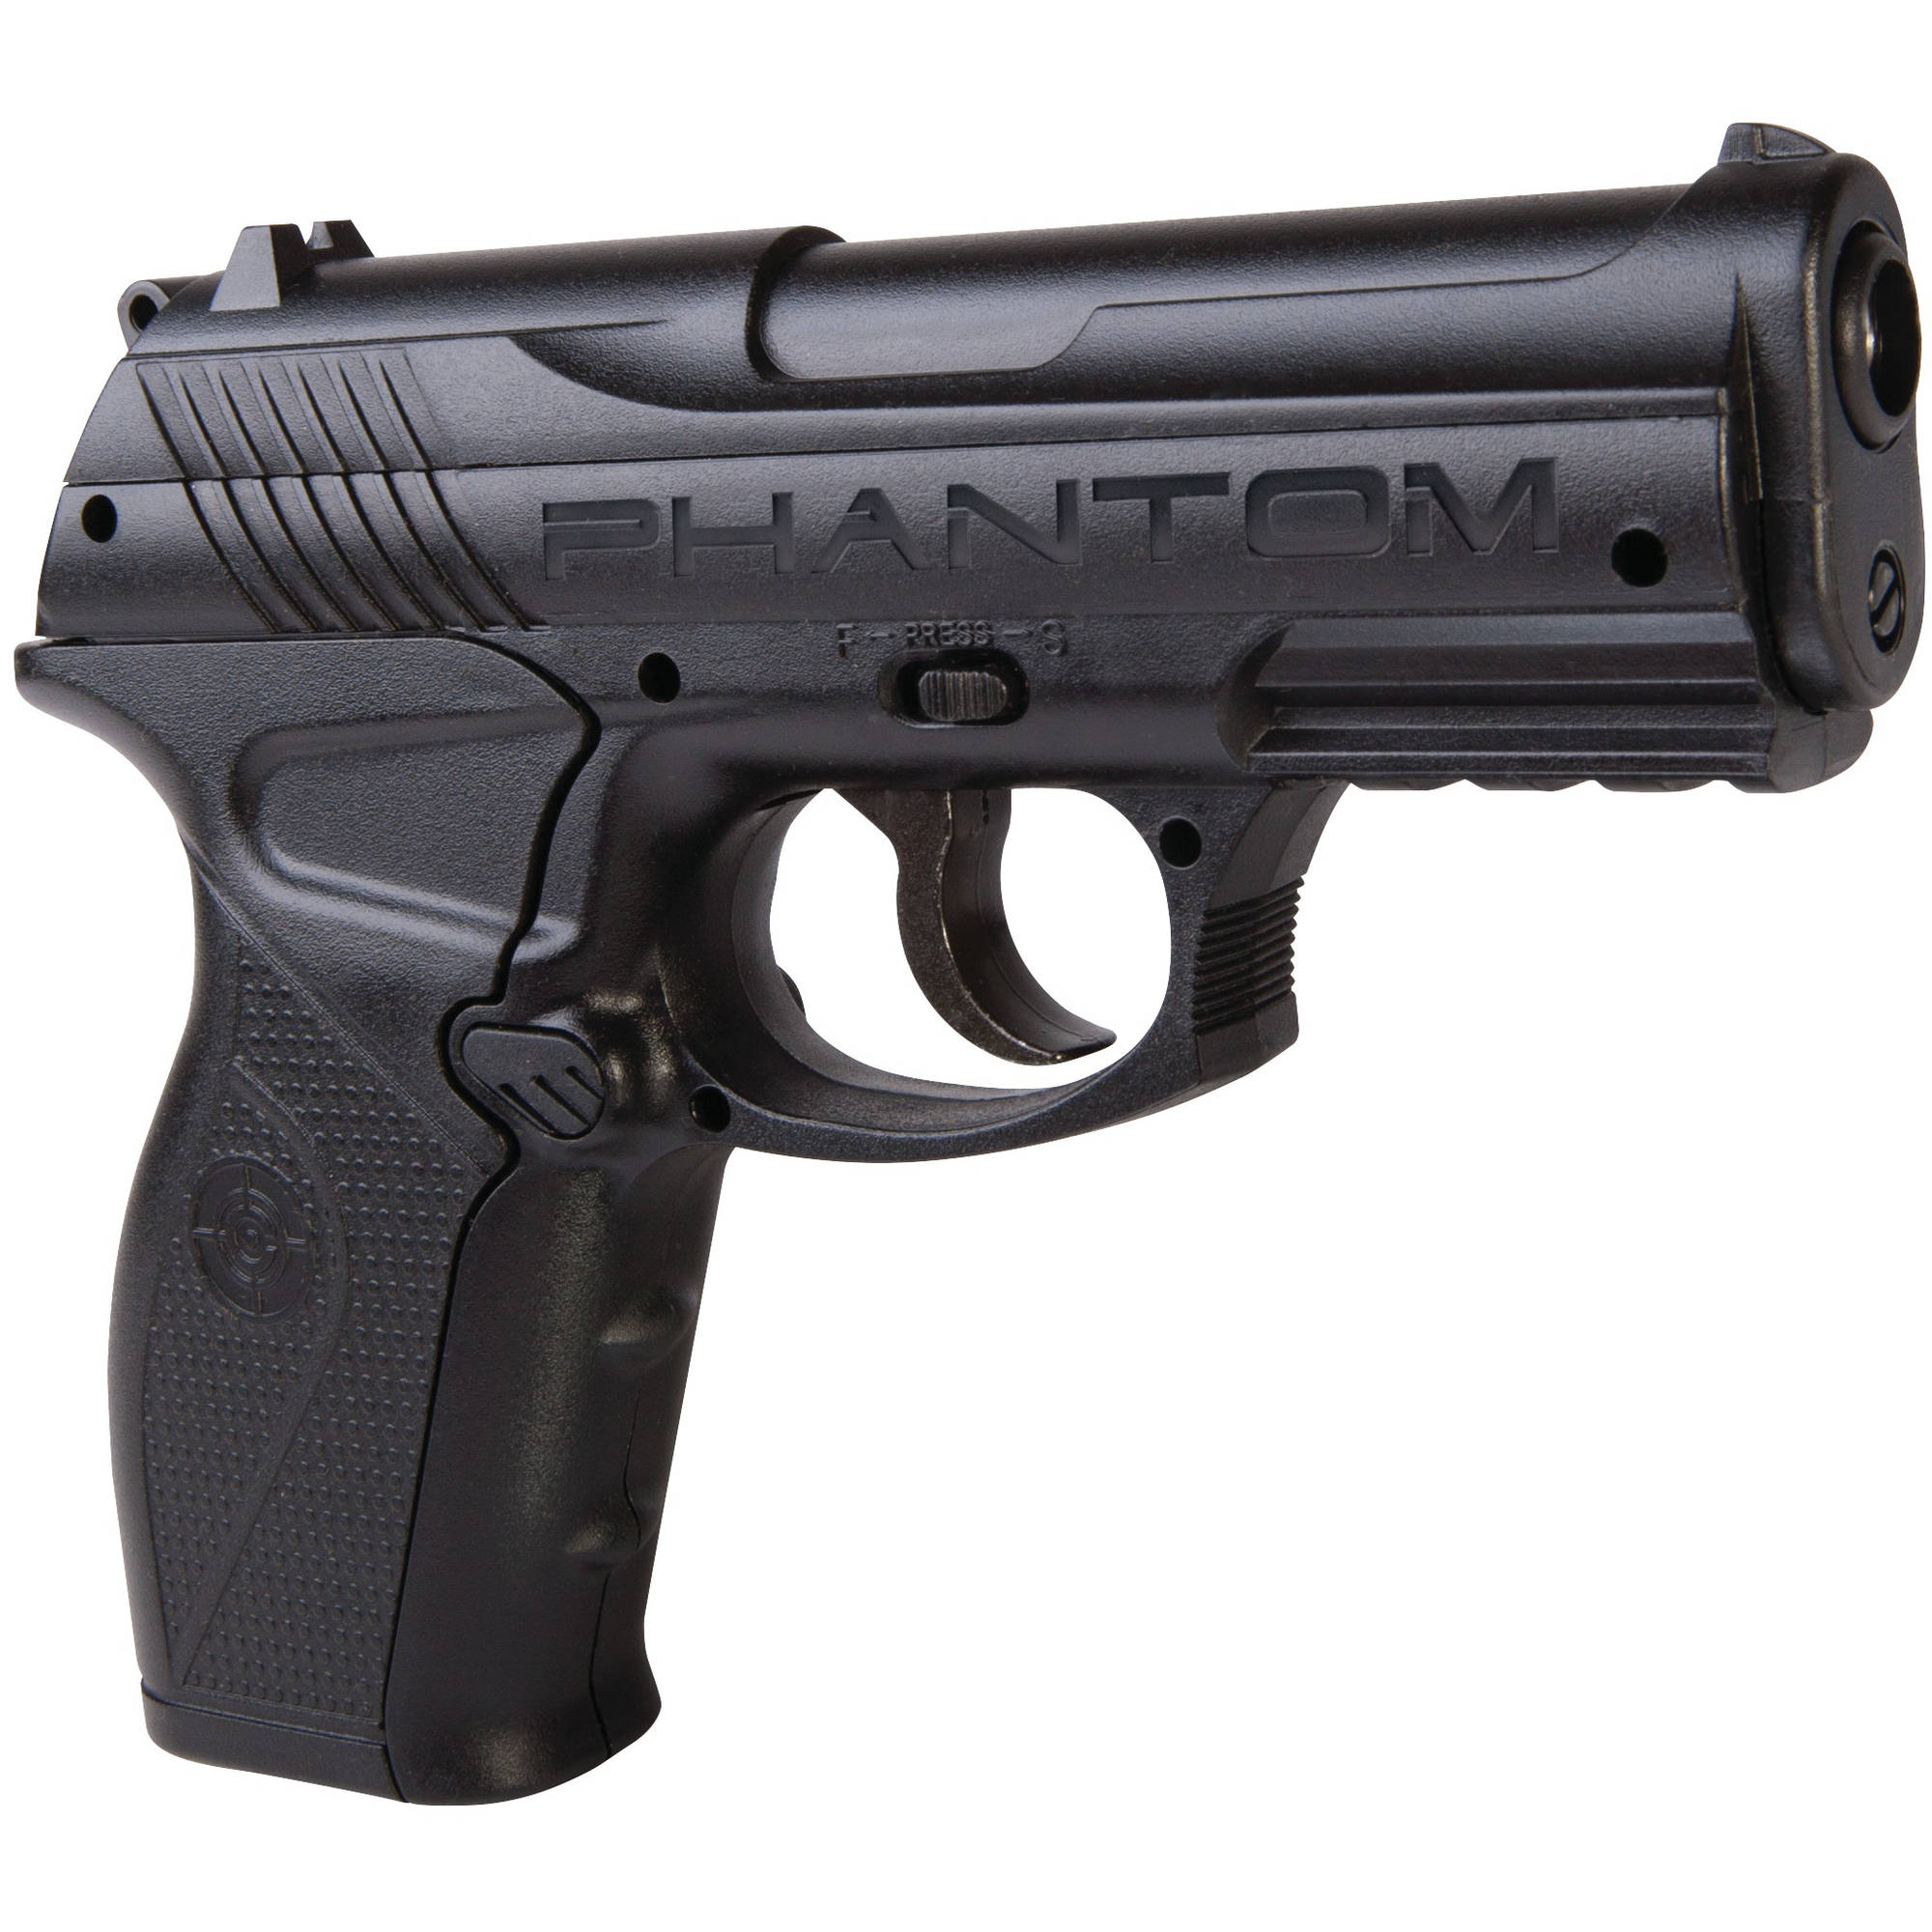 Crosman P10 Phantom .177 Caliber Semi-Auto CO2 Air Pistol, 480fps